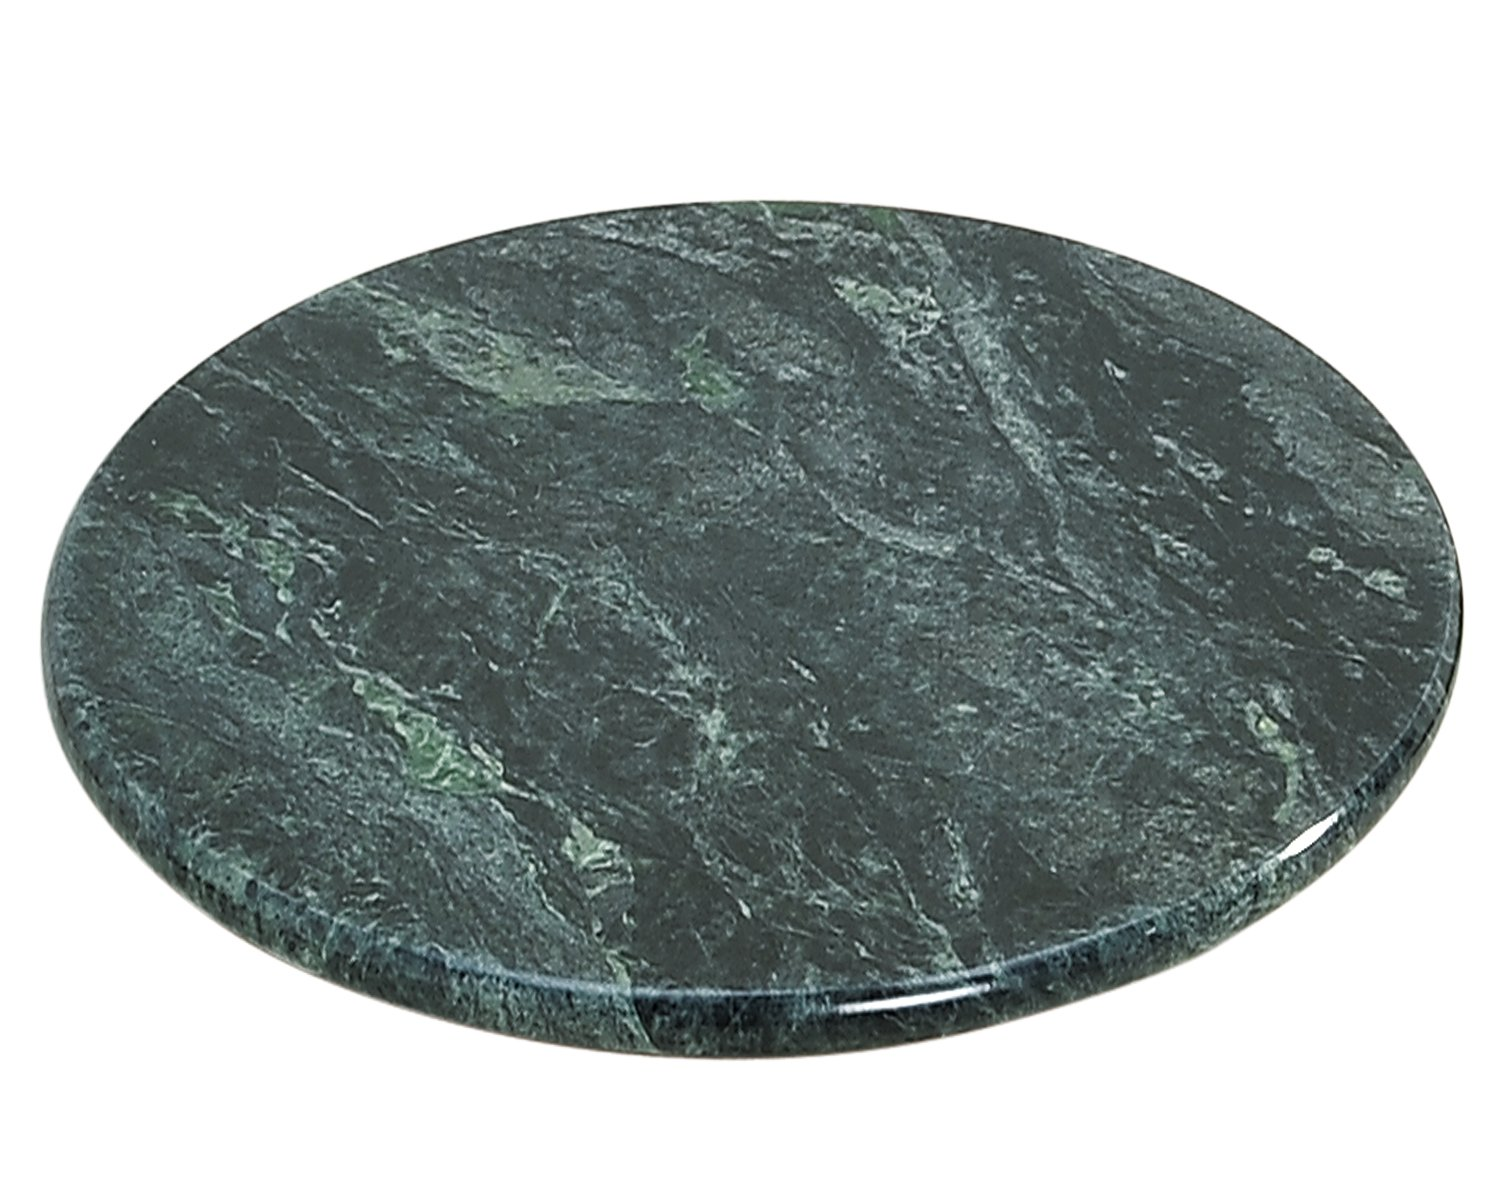 Creative Home Natural Green Marble Lazy Susan, 12'' Diameter by Evco